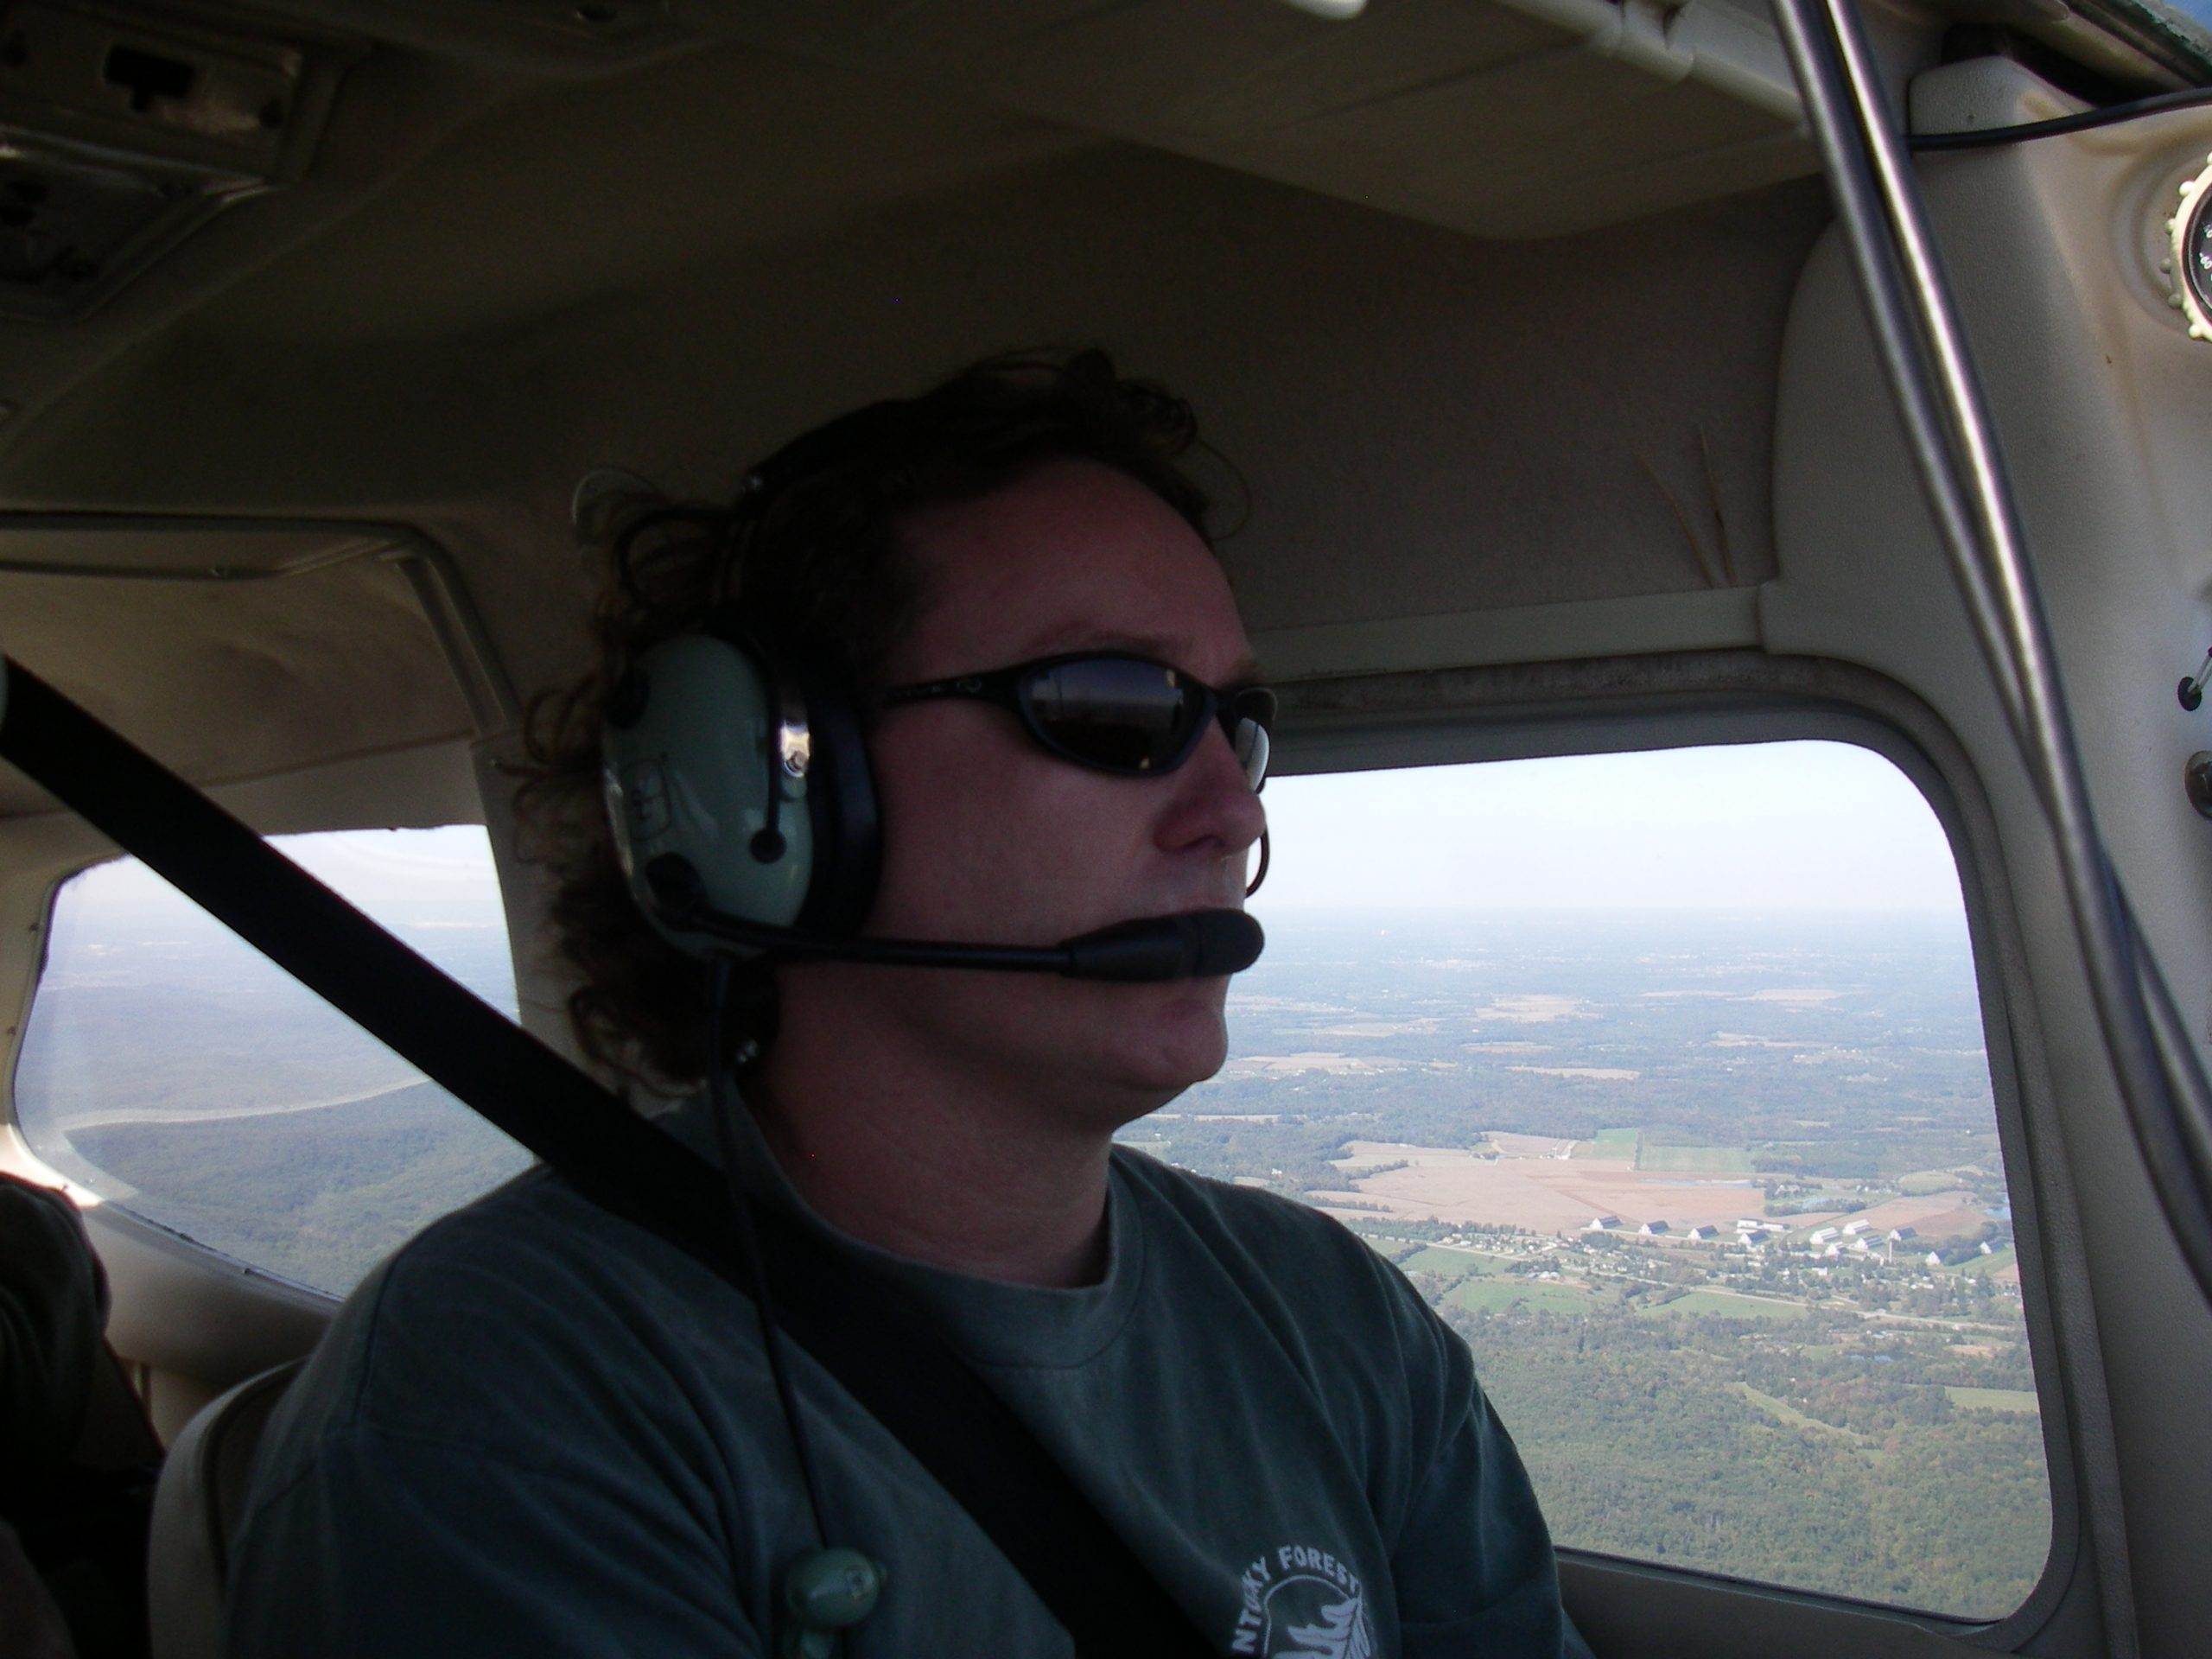 Indiana white county chalmers - Your Best Choice For Flight Aero Tech Services